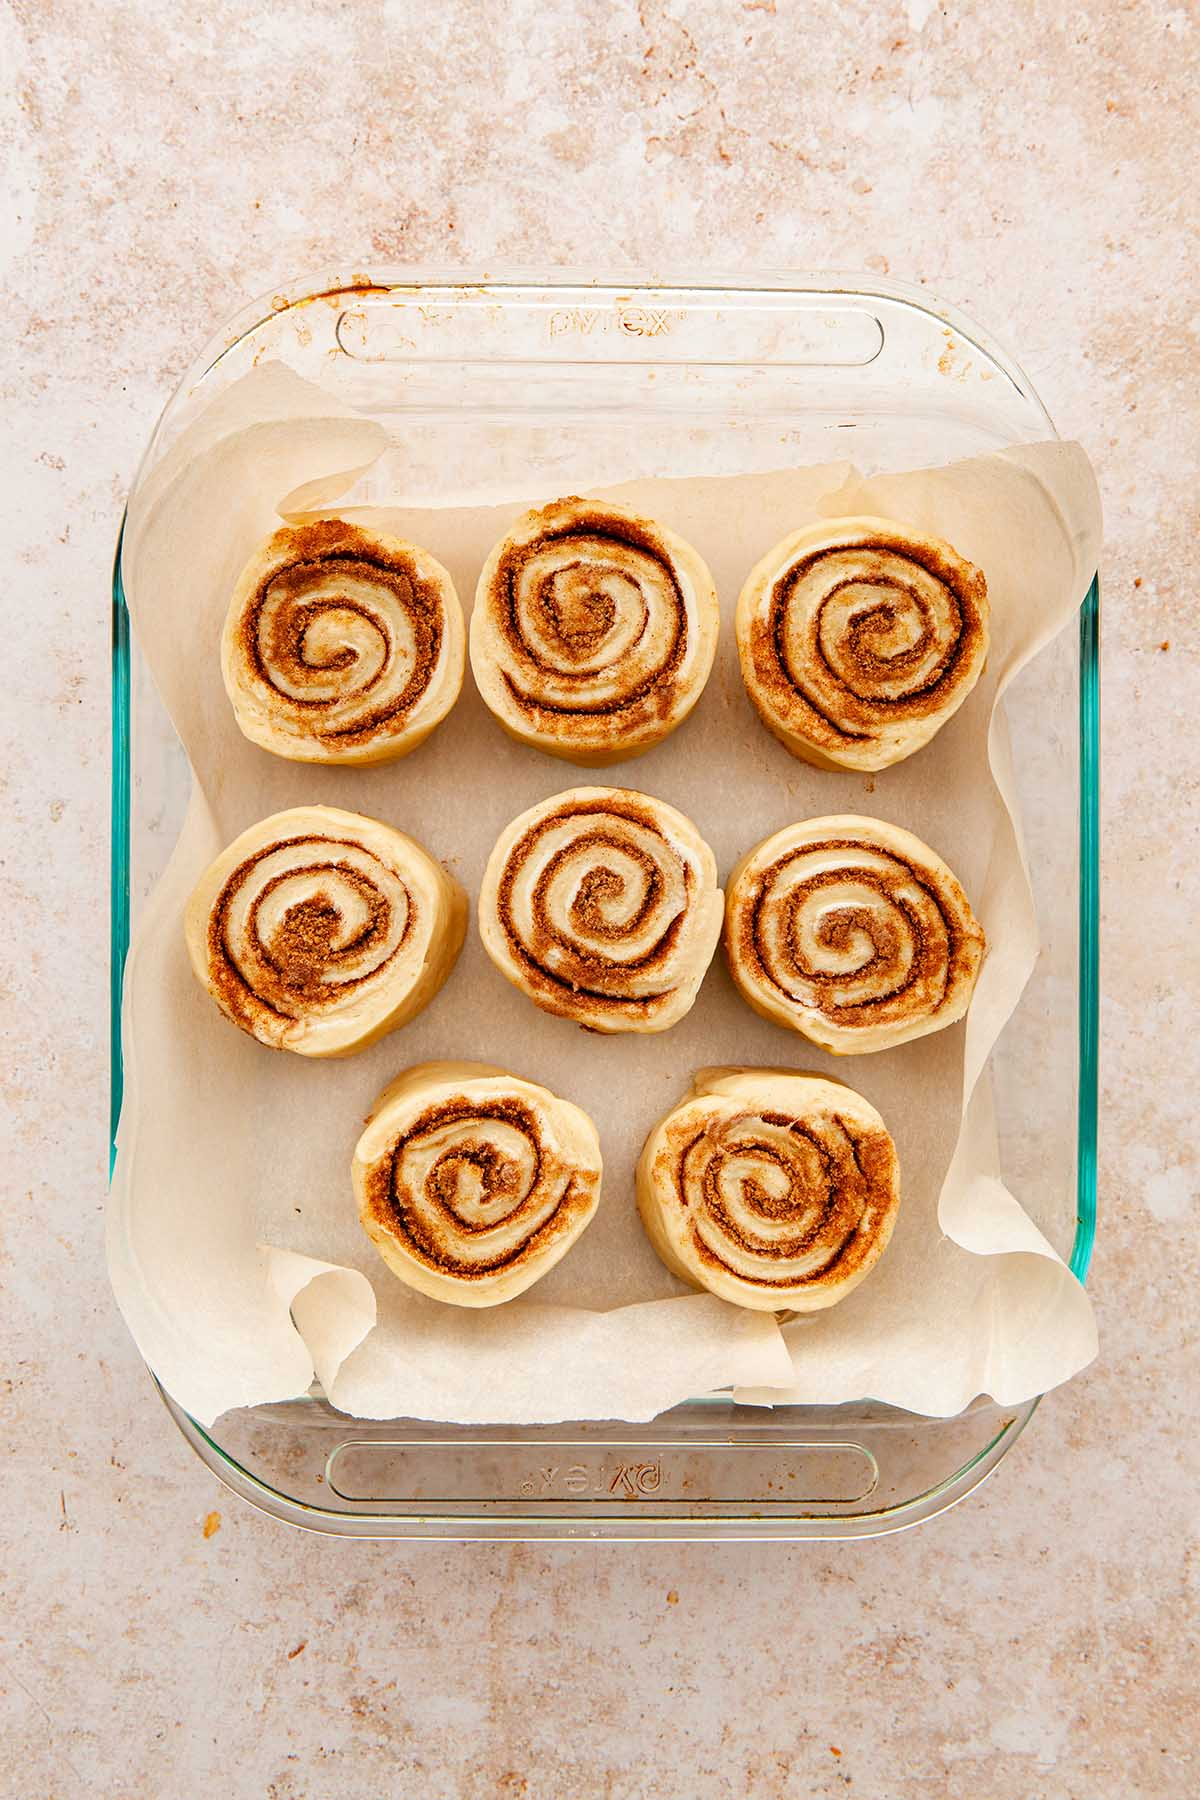 Cinnamon buns in a baking dish before the second rise.